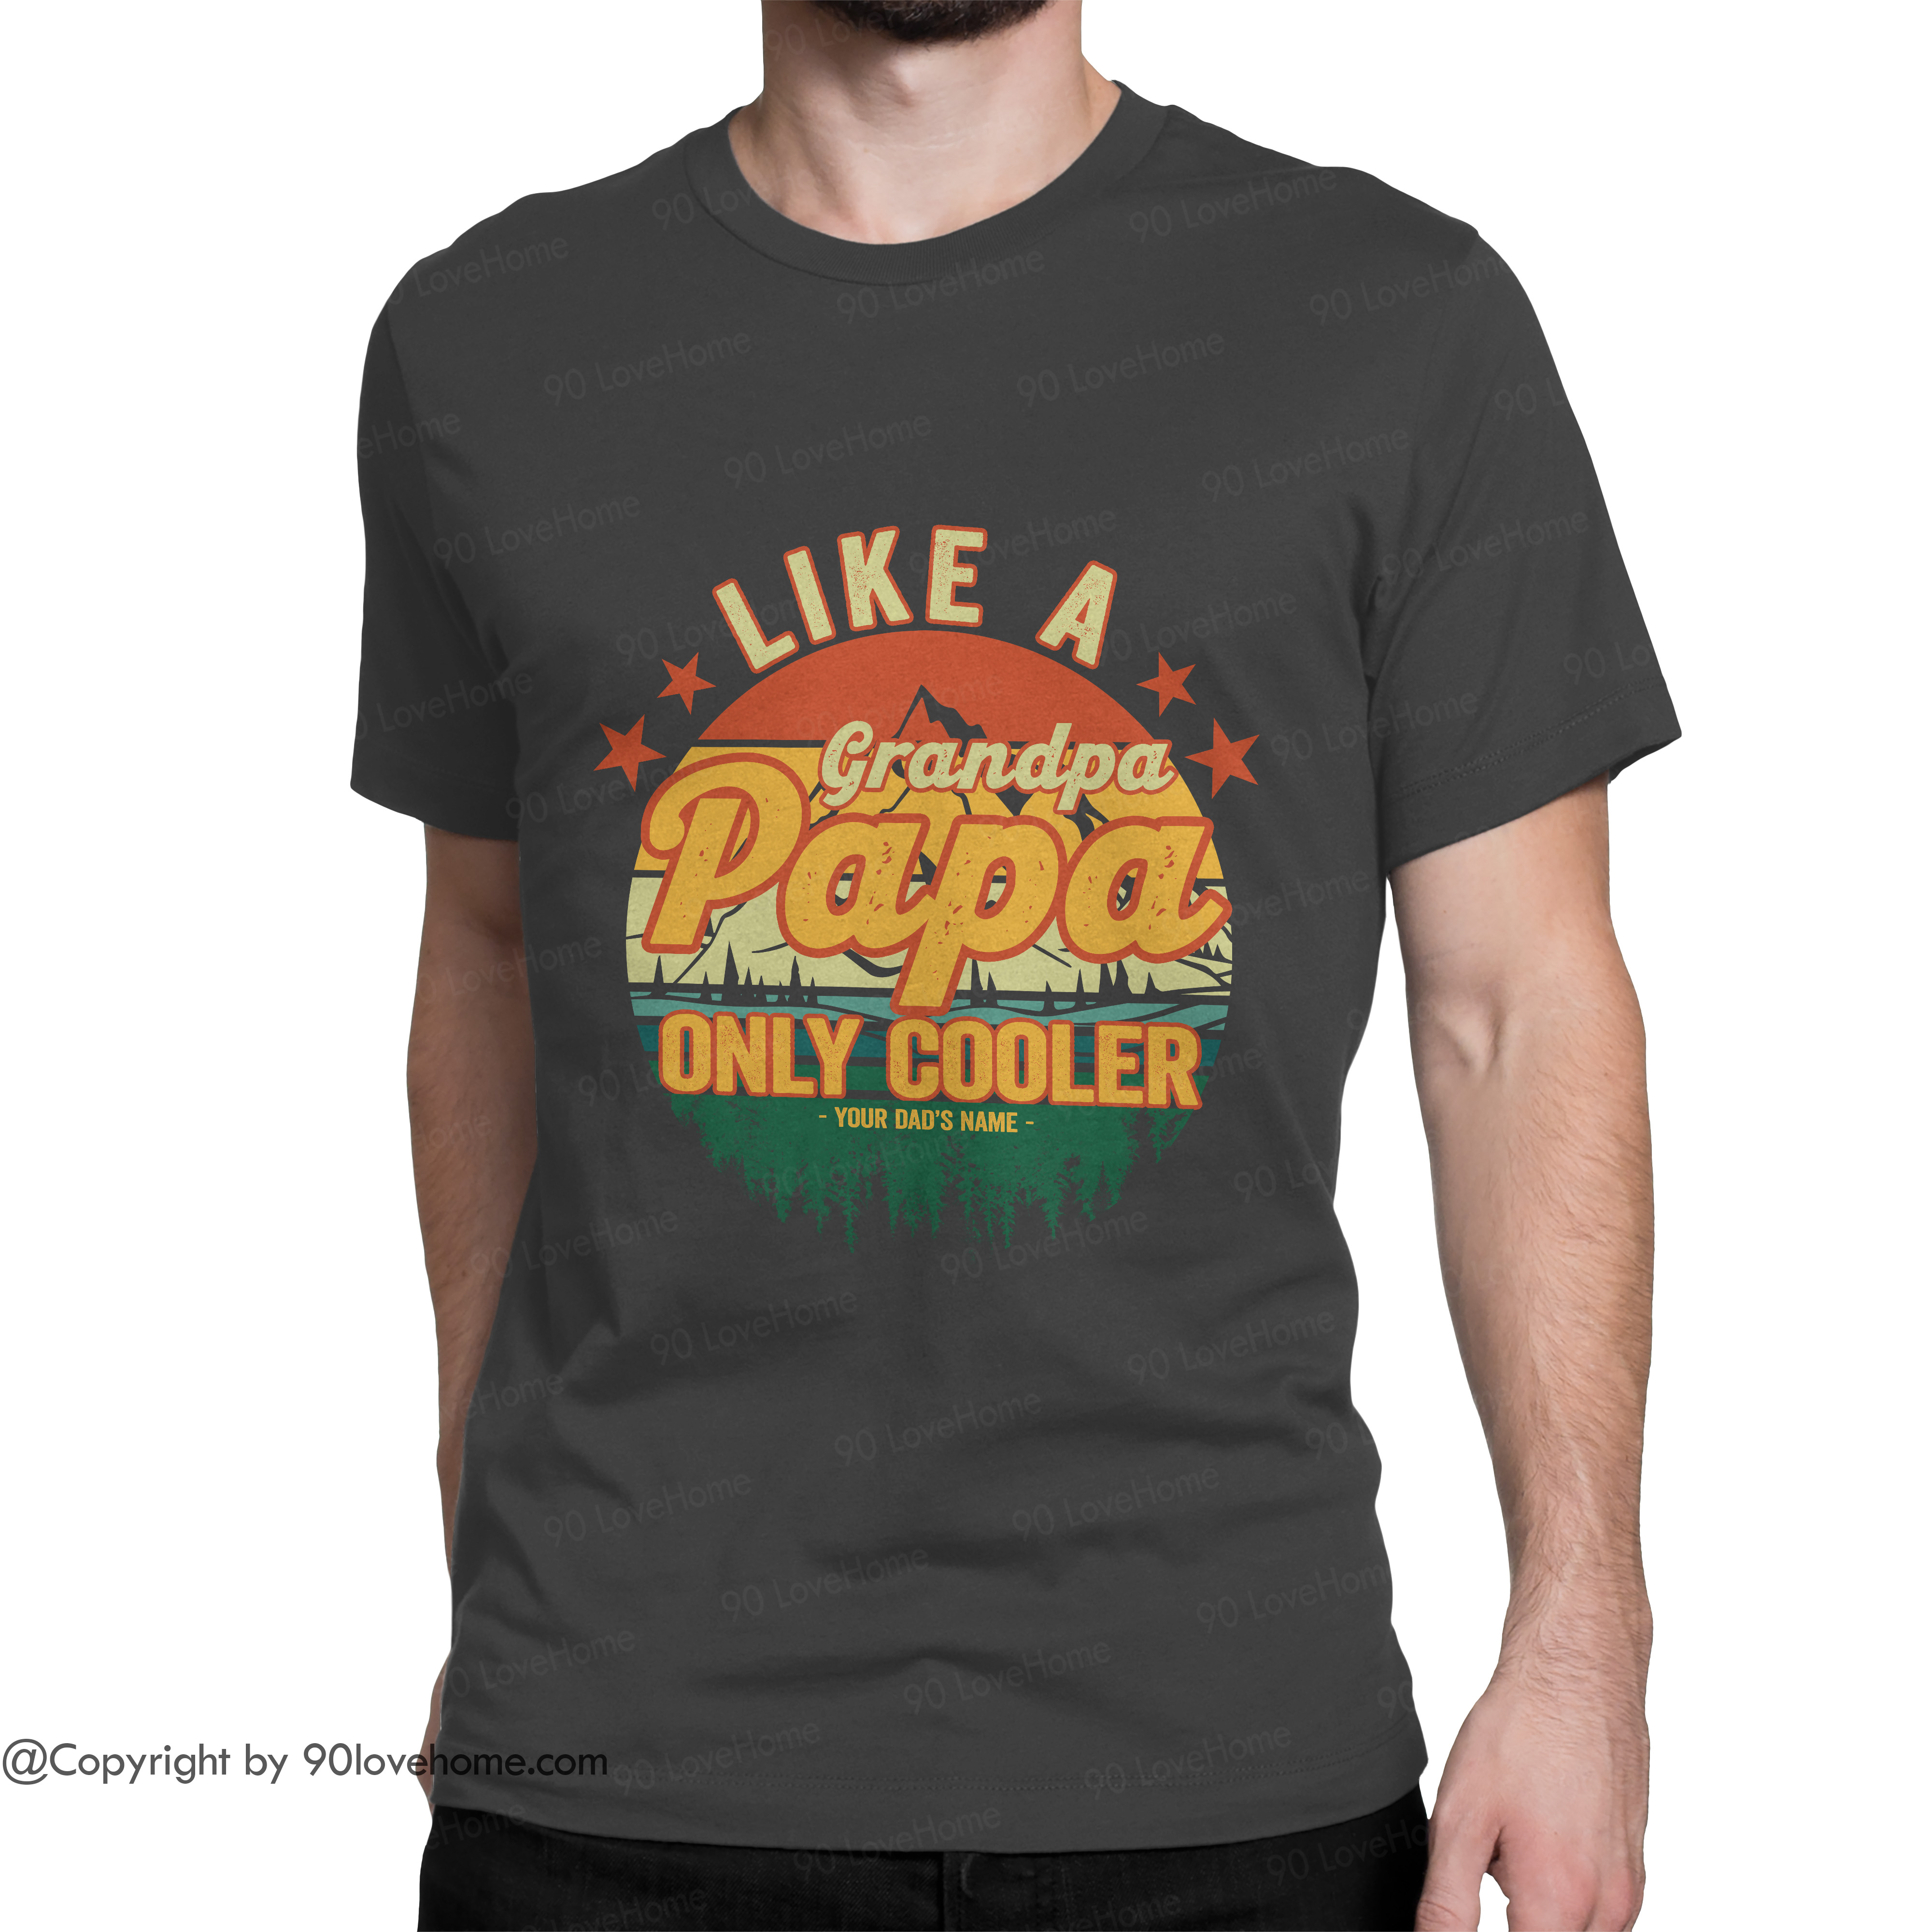 Customized Vintage Papa Like A Granpa Only Cooler Unisex T-shirt Funny Dad Saying Tee Father's Day Birthday Gift For Dad 90LoveHome